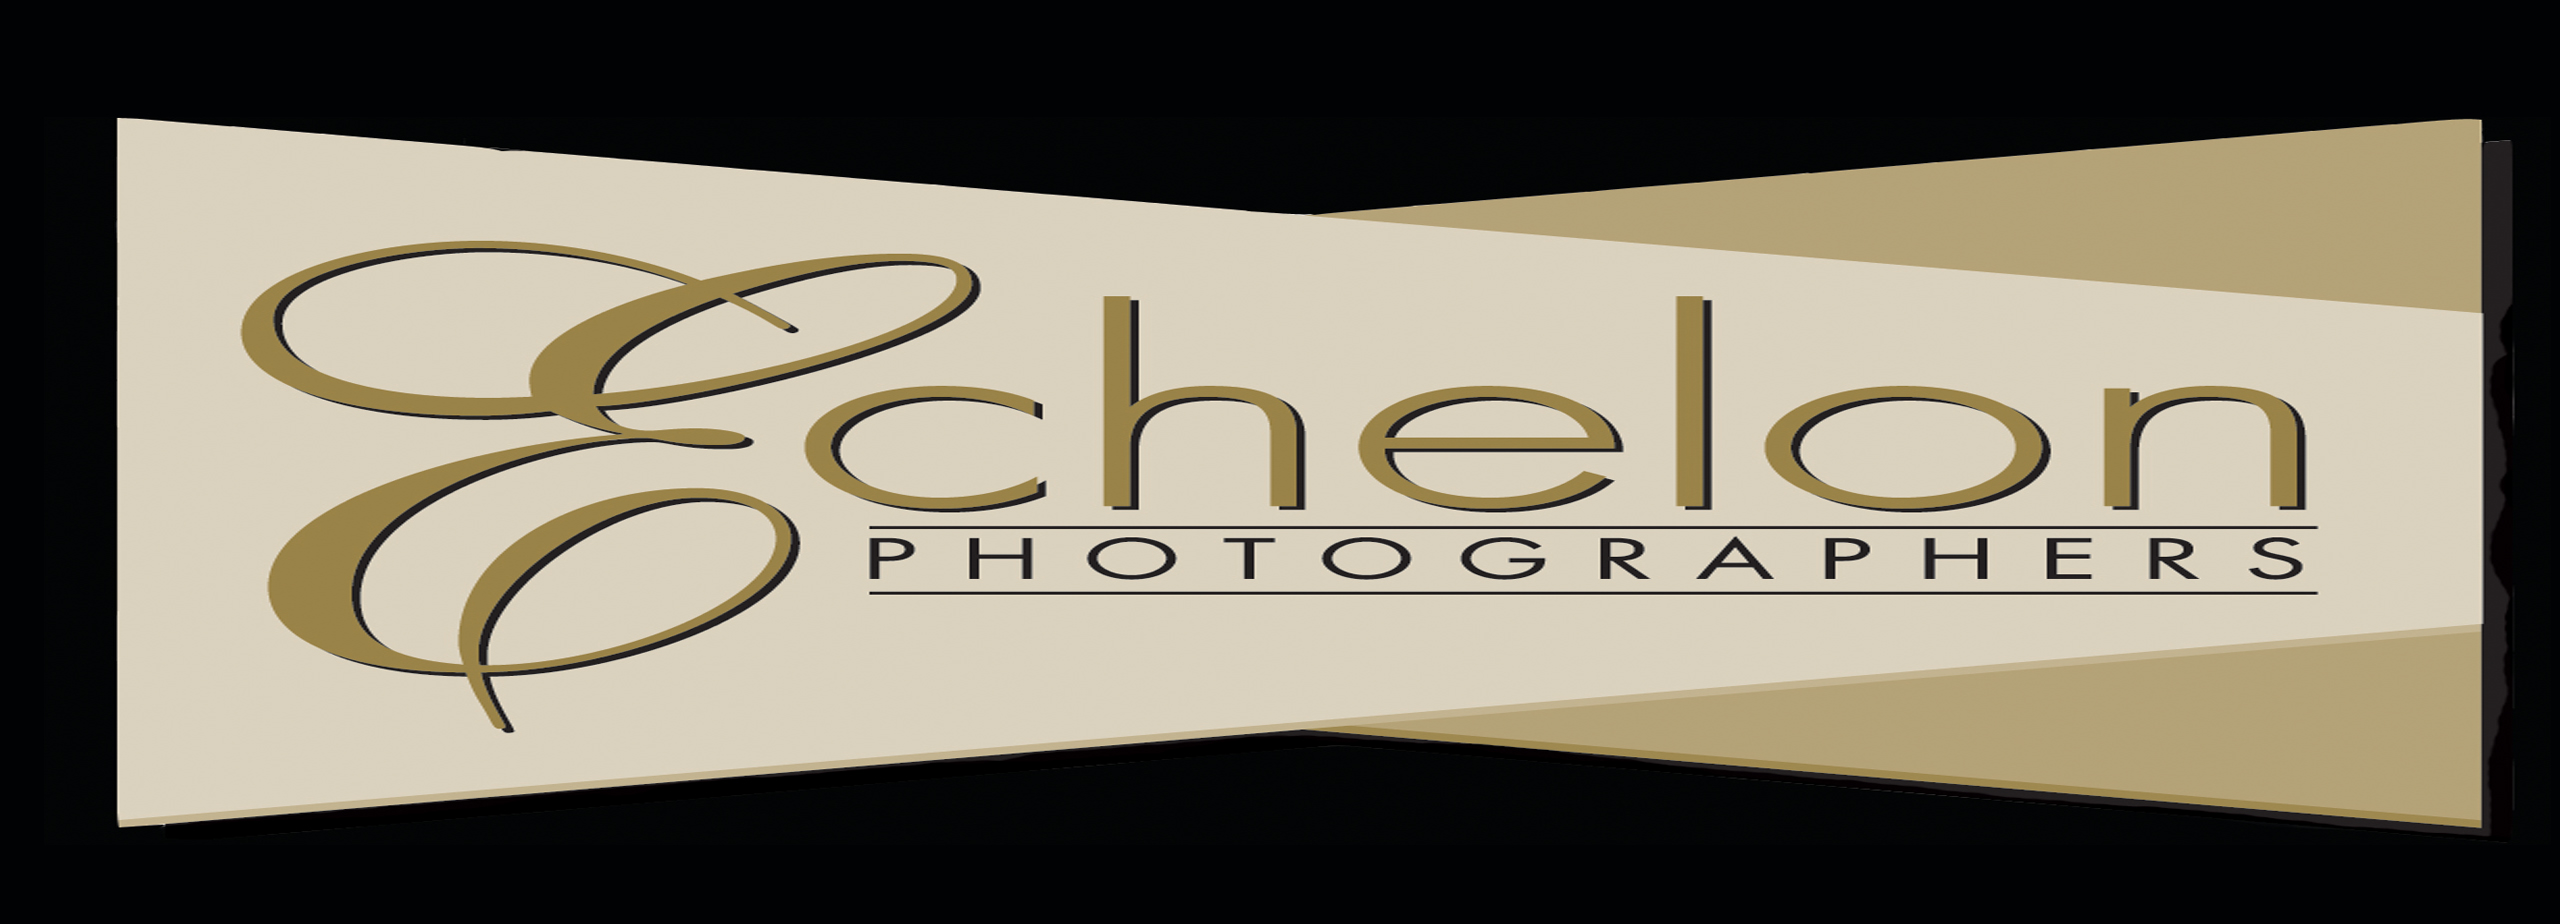 Echelon Photographers